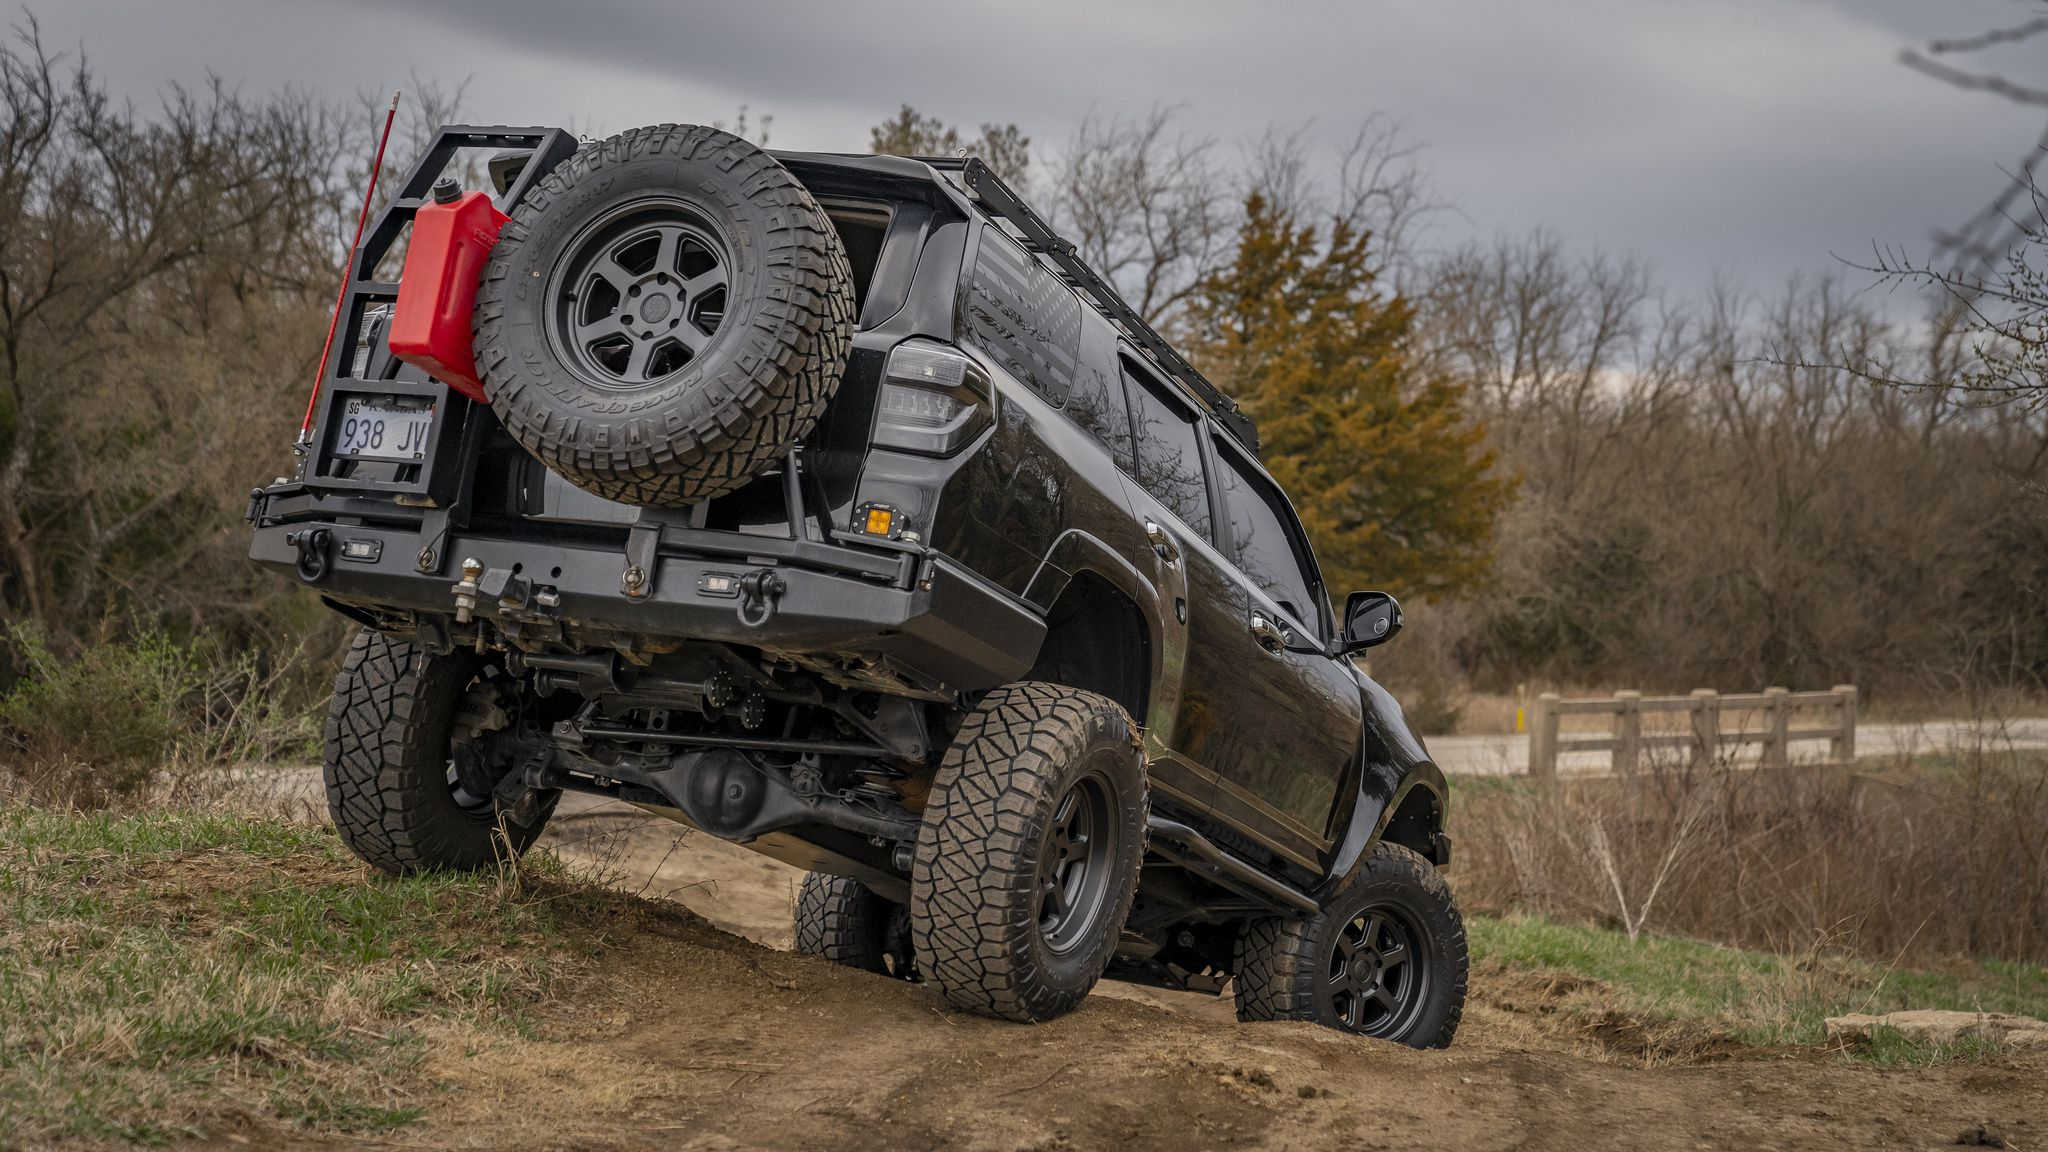 Toyota 4Runner at offroad